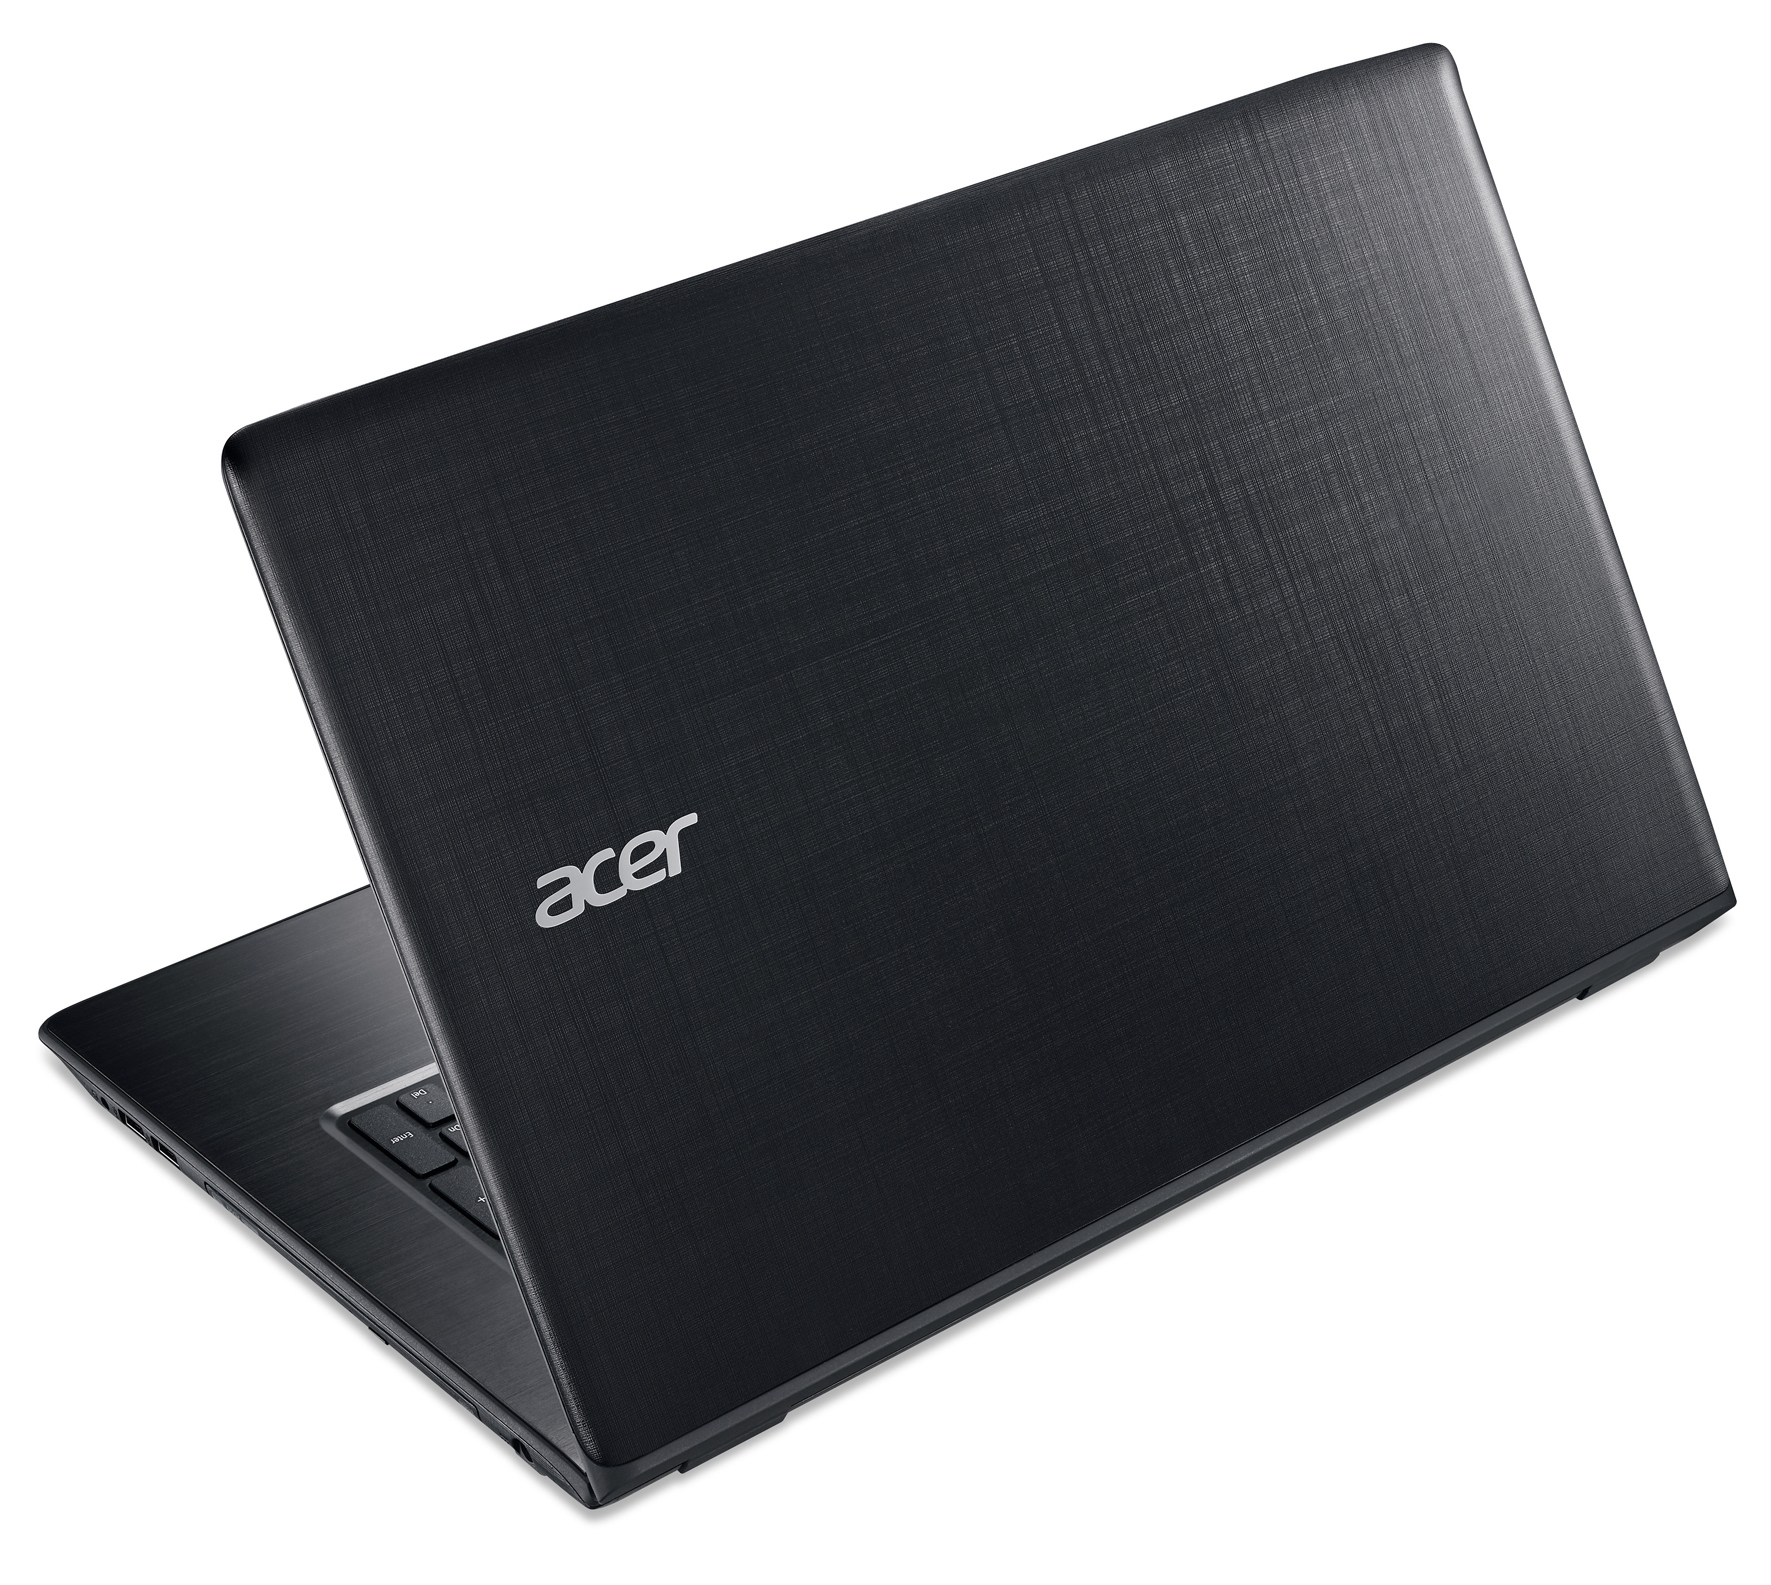 ACER ASPIRE E5-773G ATHEROS BLUETOOTH WINDOWS 8 DRIVER DOWNLOAD